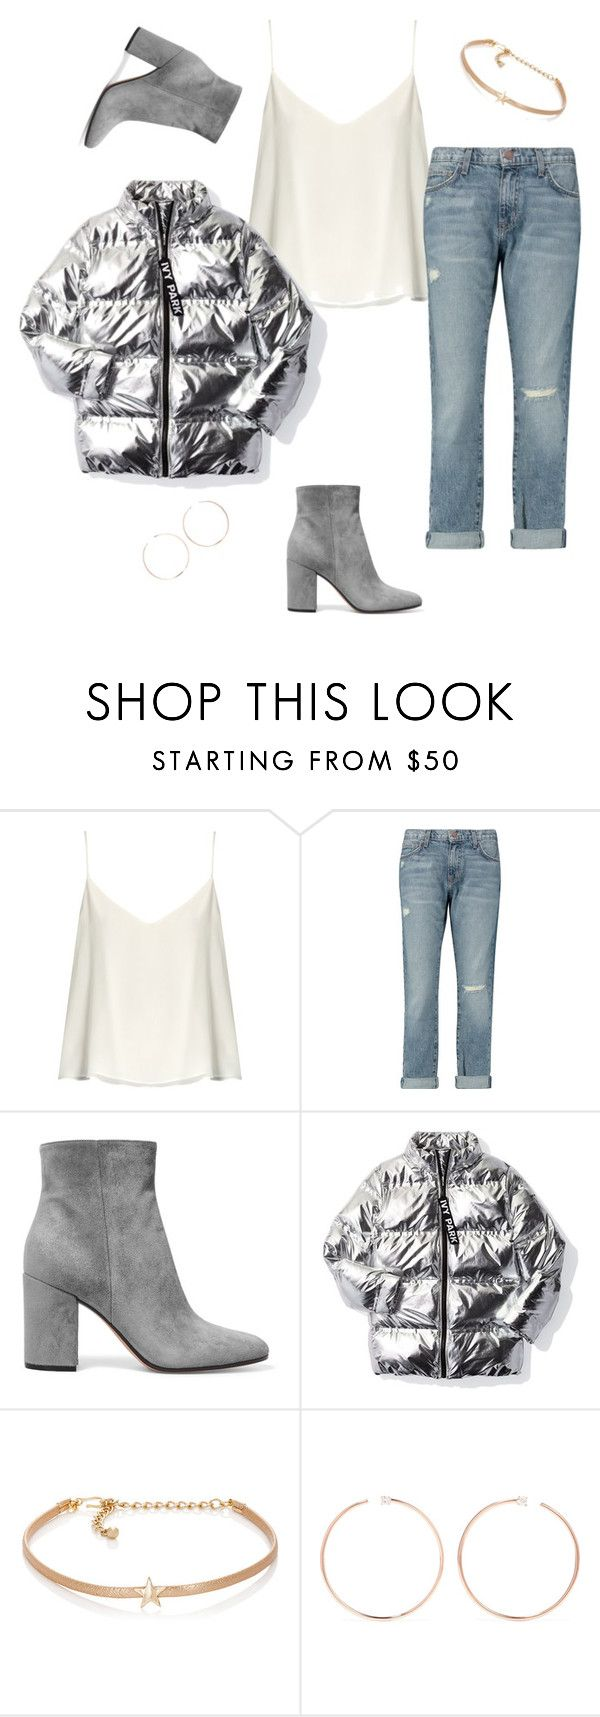 """""""#So what? I love jeans! 💙💙💋"""" by joe-khulan on Polyvore featuring Raey, Current/Elliott, Gianvito Rossi, Ivy Park, Kenneth Jay Lane and Anita Ko"""